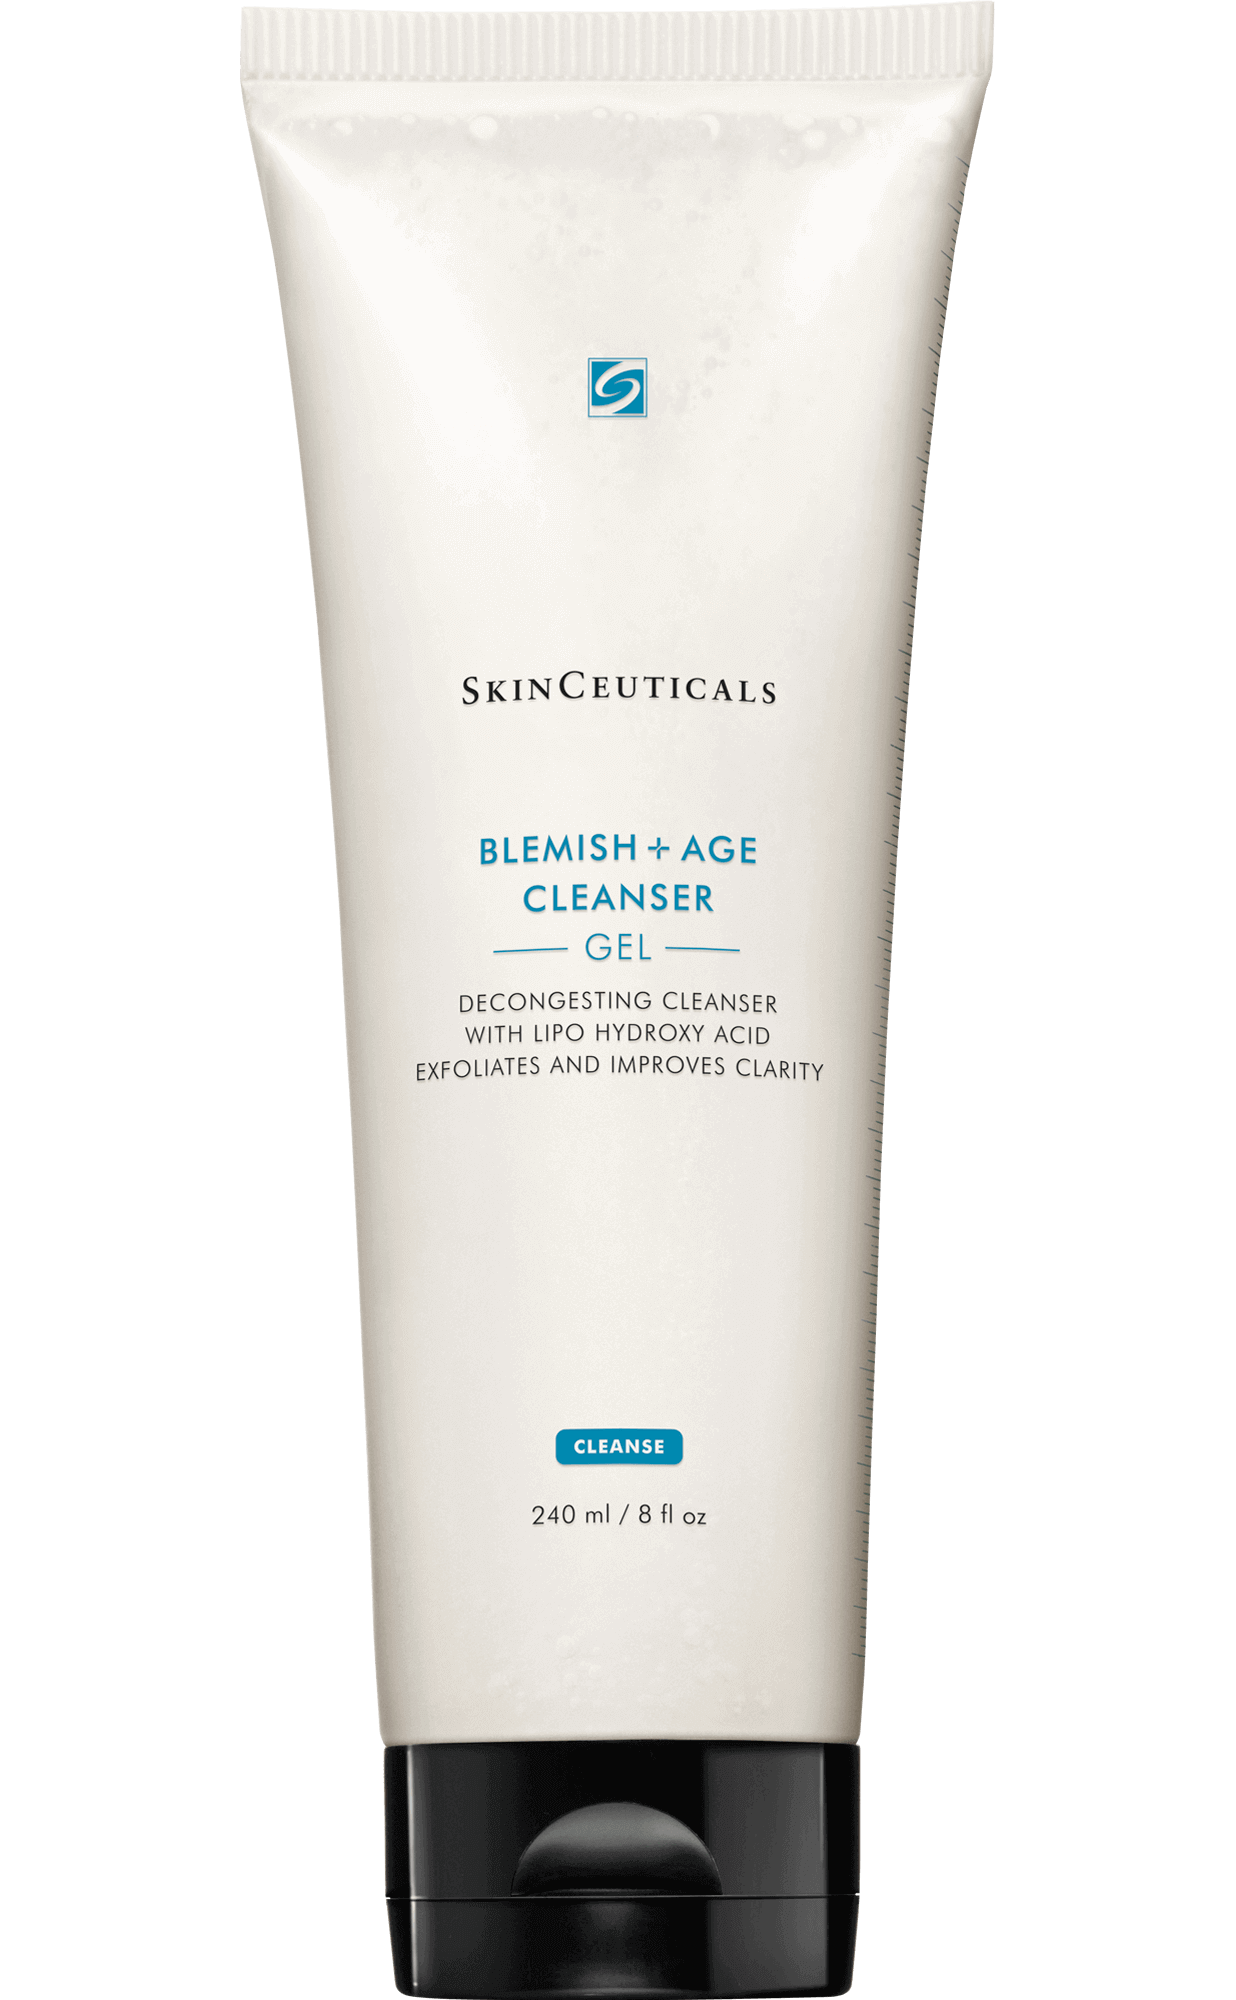 Blemish + Age Cleanser Gel